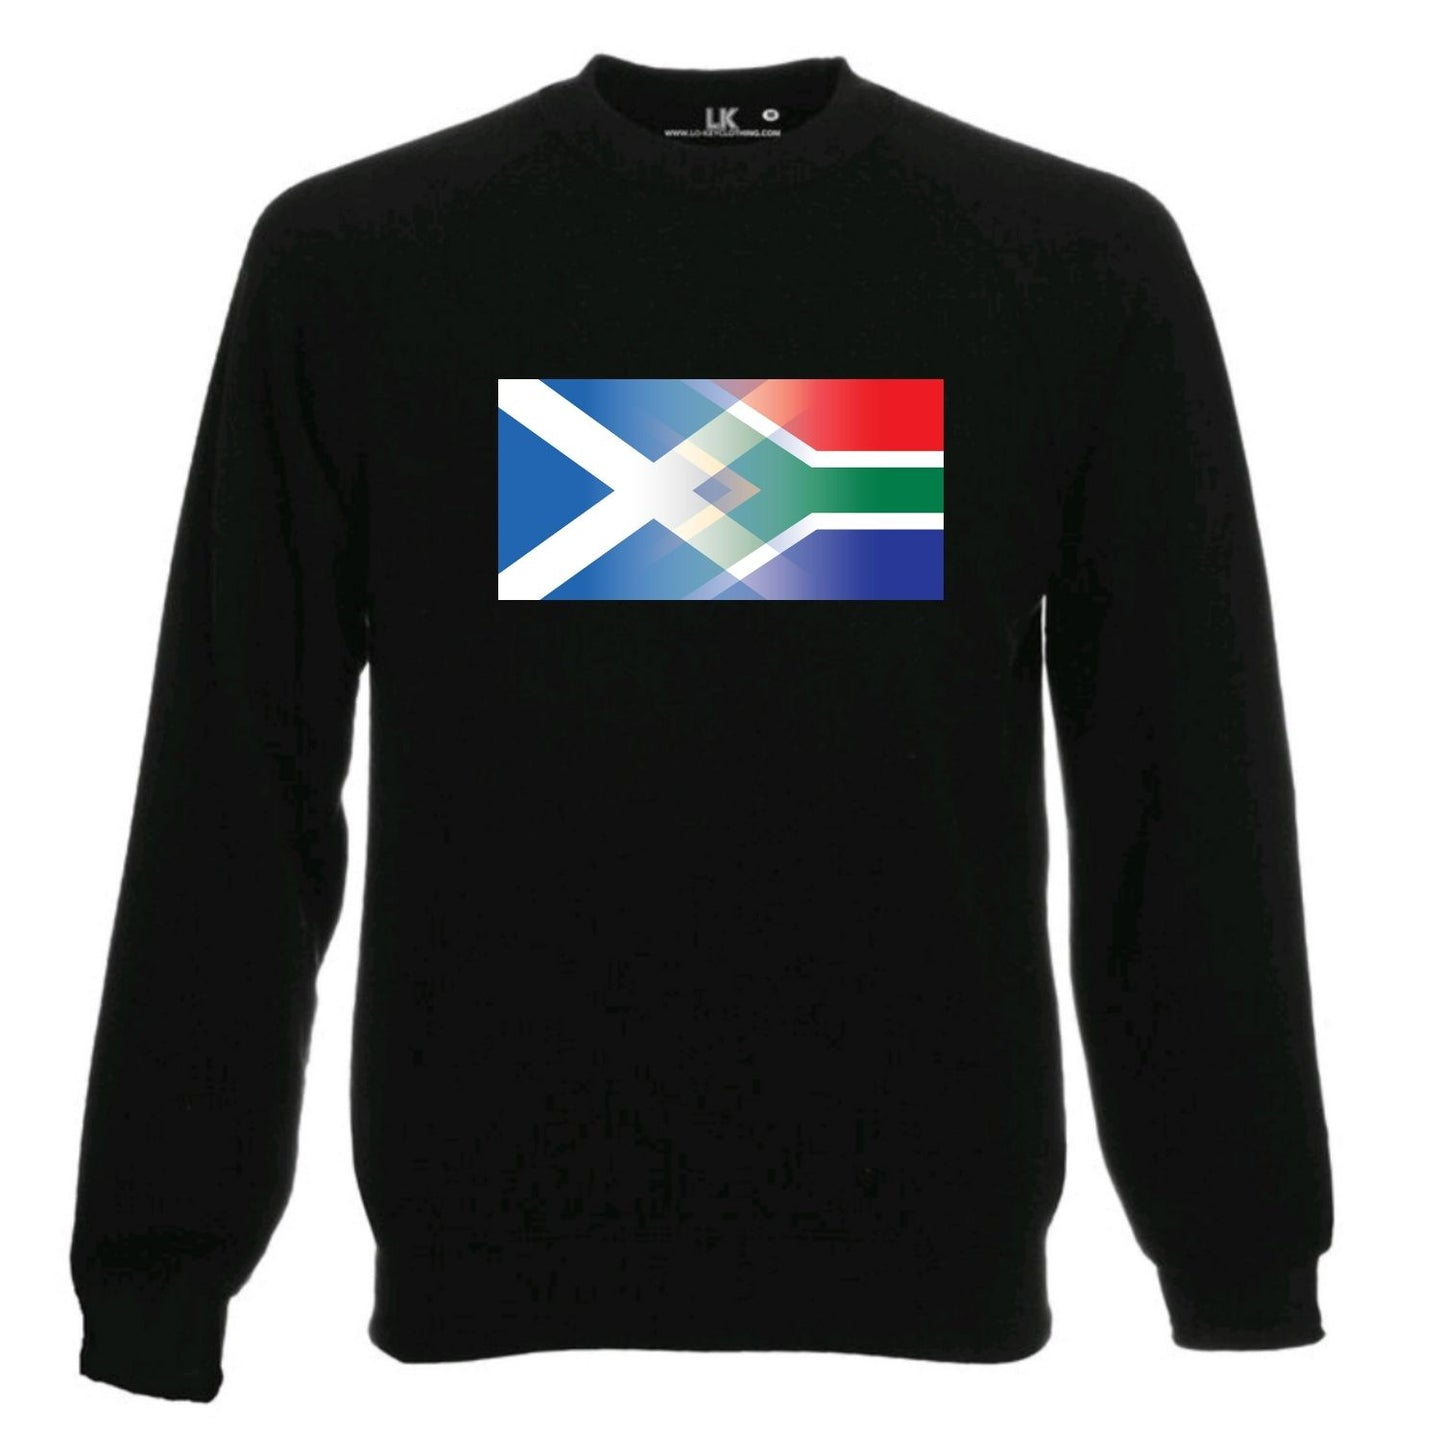 Scotland and South Africa Mixed Heritage Flag Sweatshirt